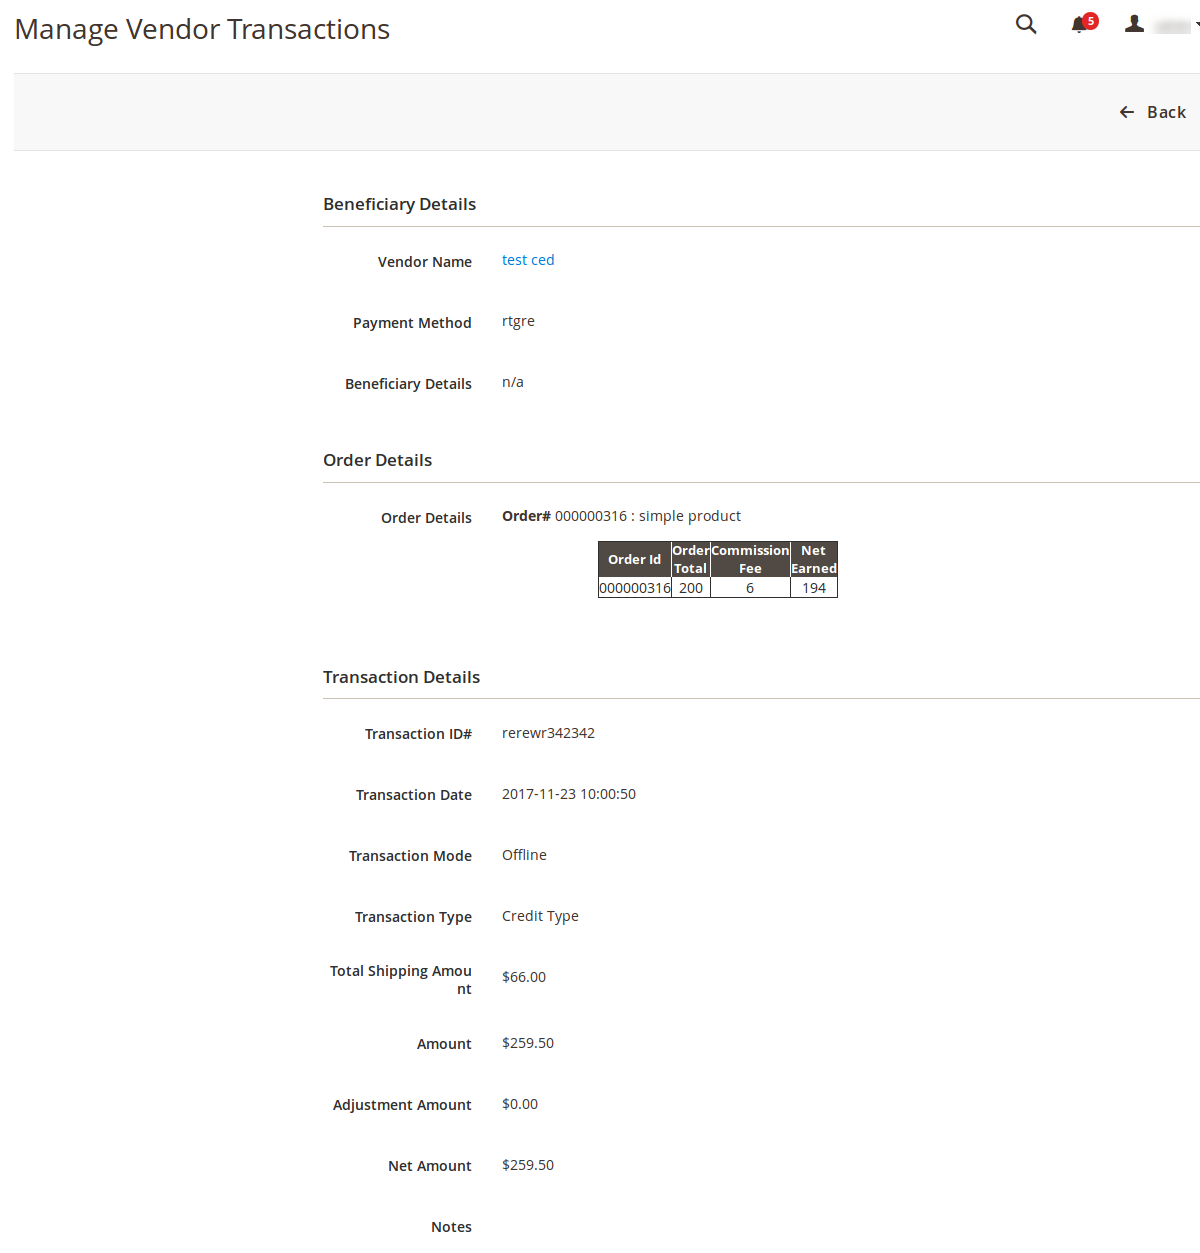 ManageVendorTransactions_ViewPage